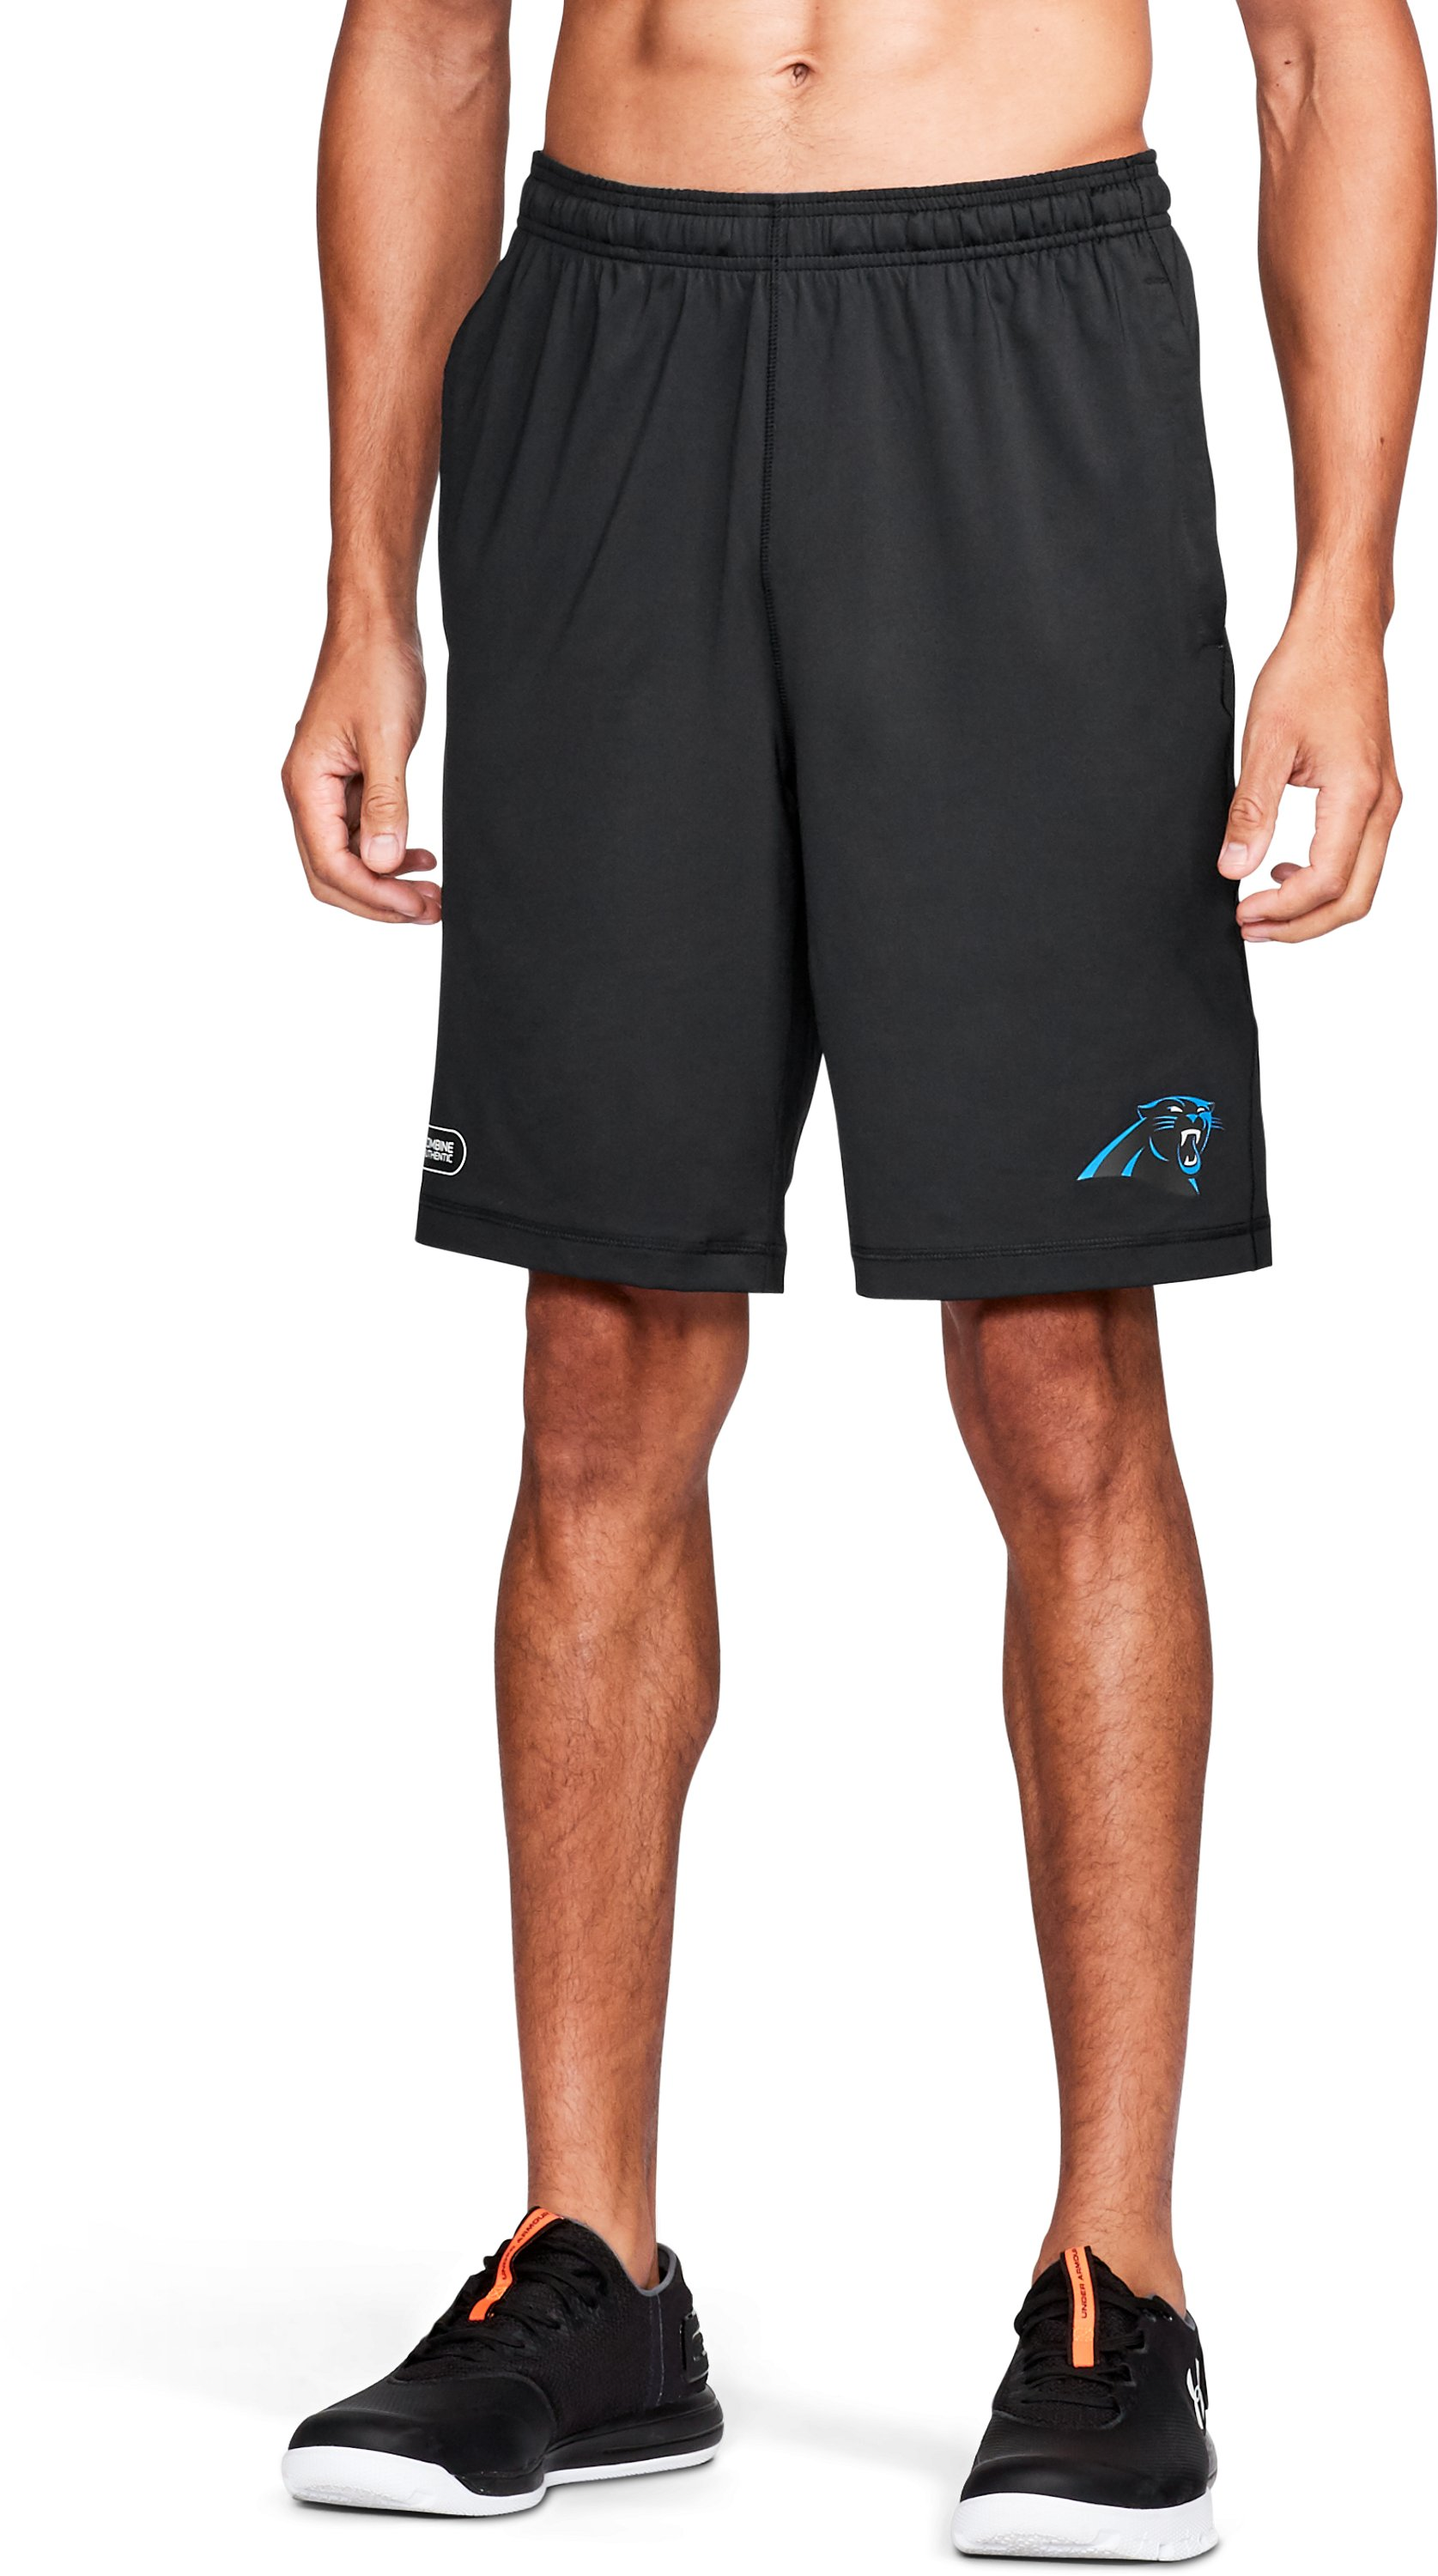 Men's NFL Combine Authentic UA Raid Shorts, Carolina Panthers